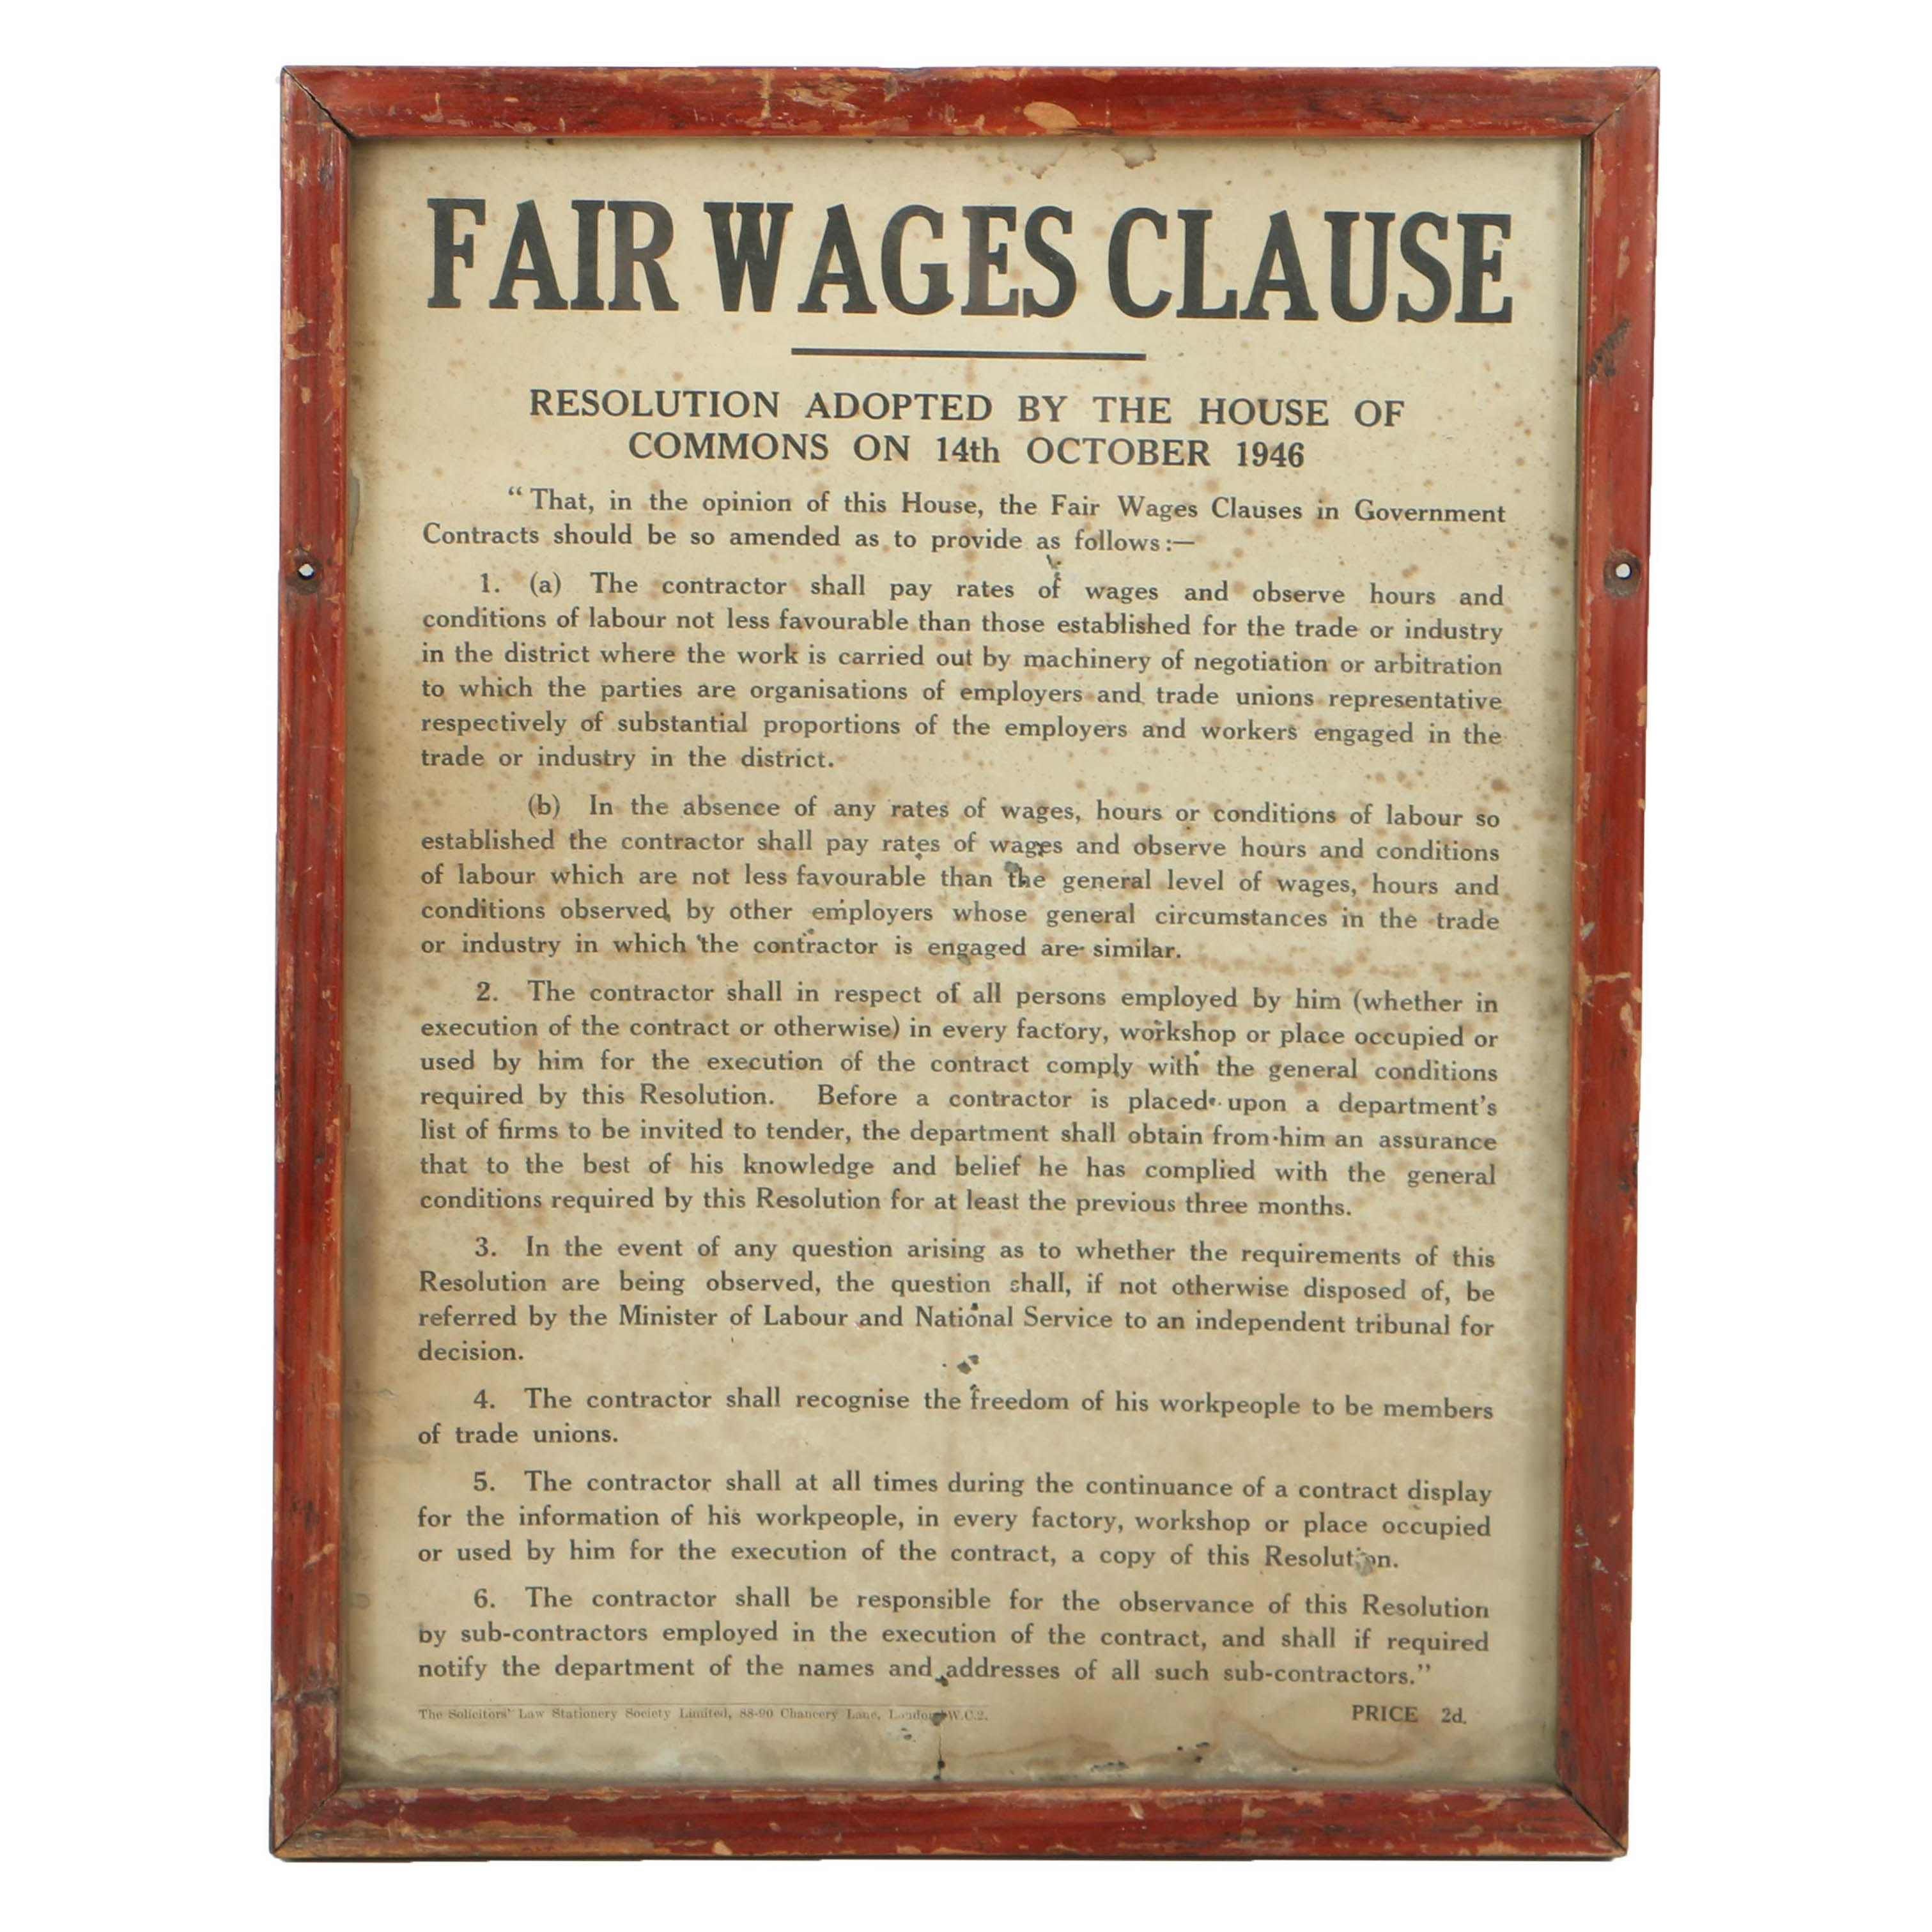 1946 London Fair Wages Clause